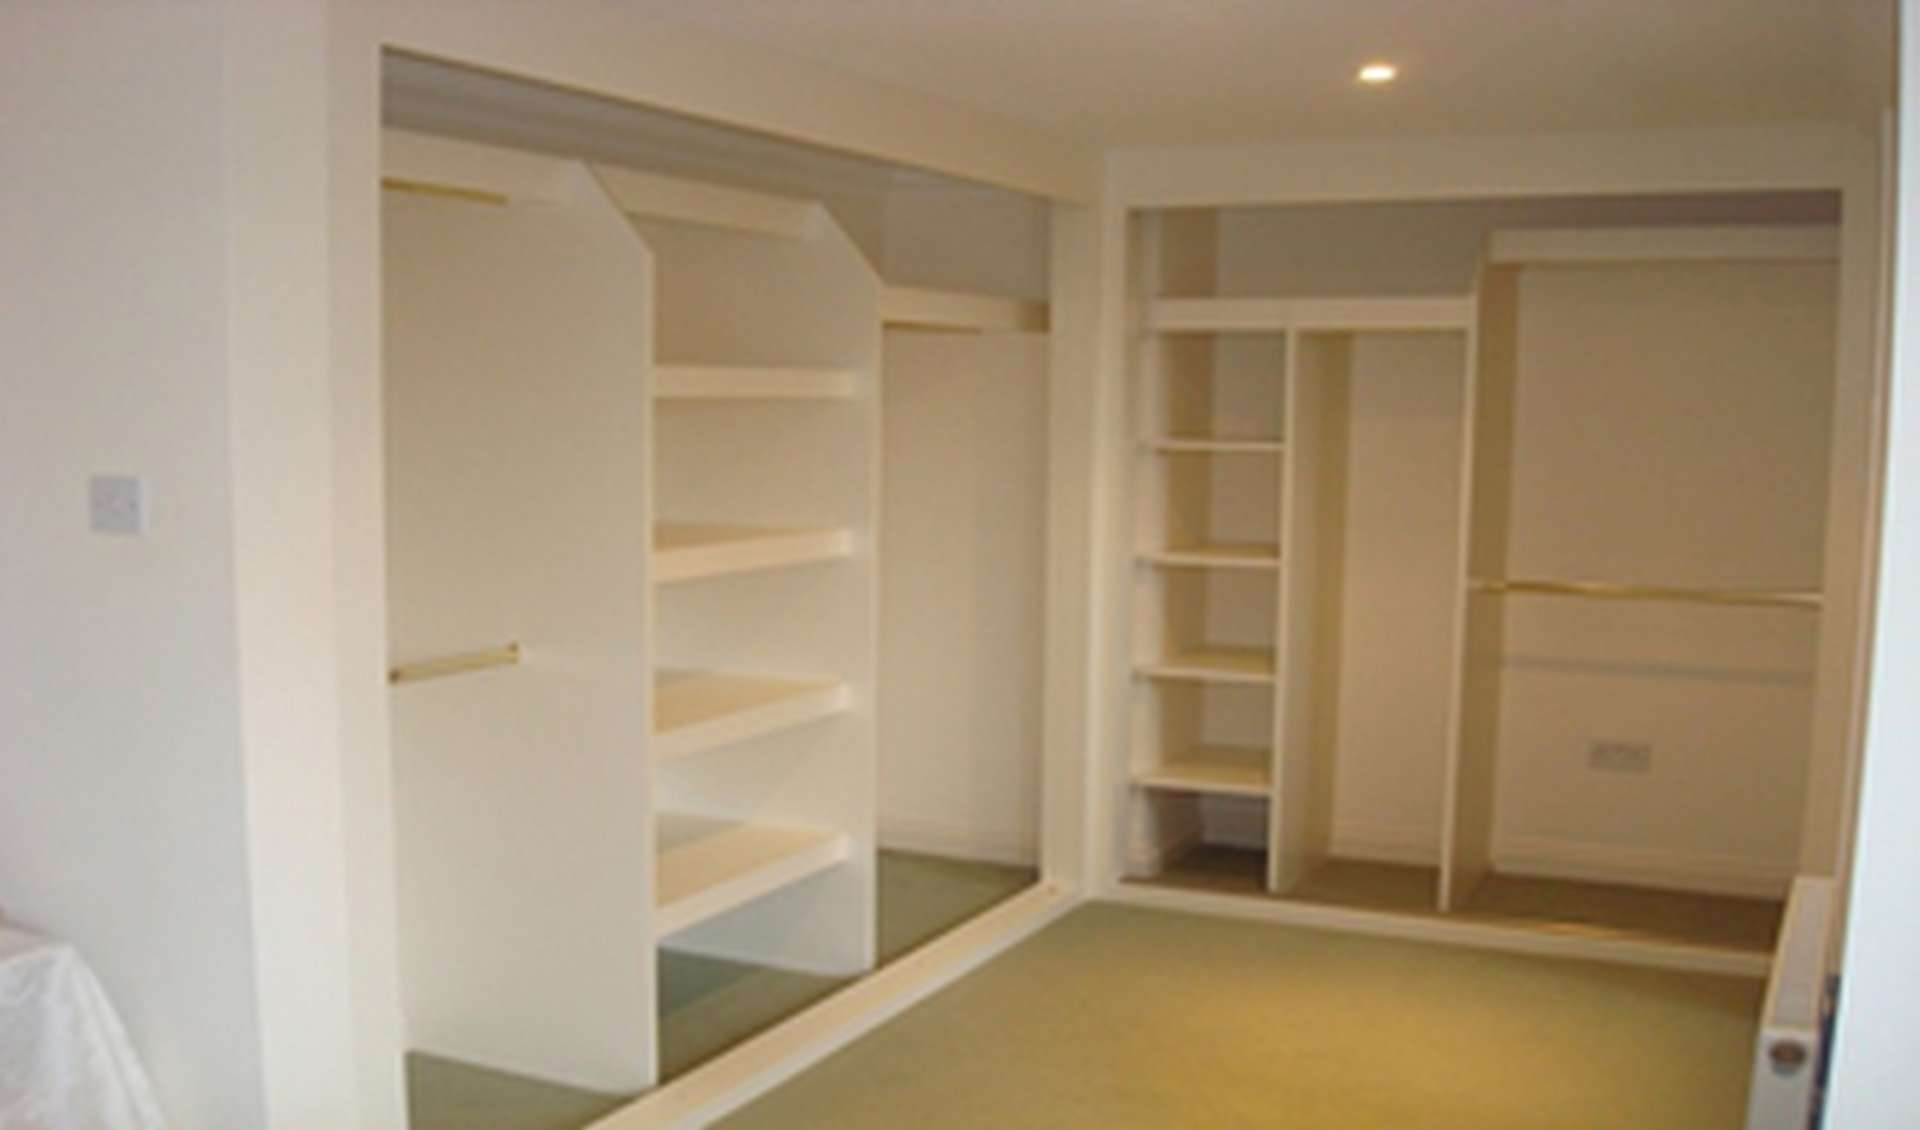 Beau Bespoke Storage Solutions U0026 Bedroom Storage Facilities